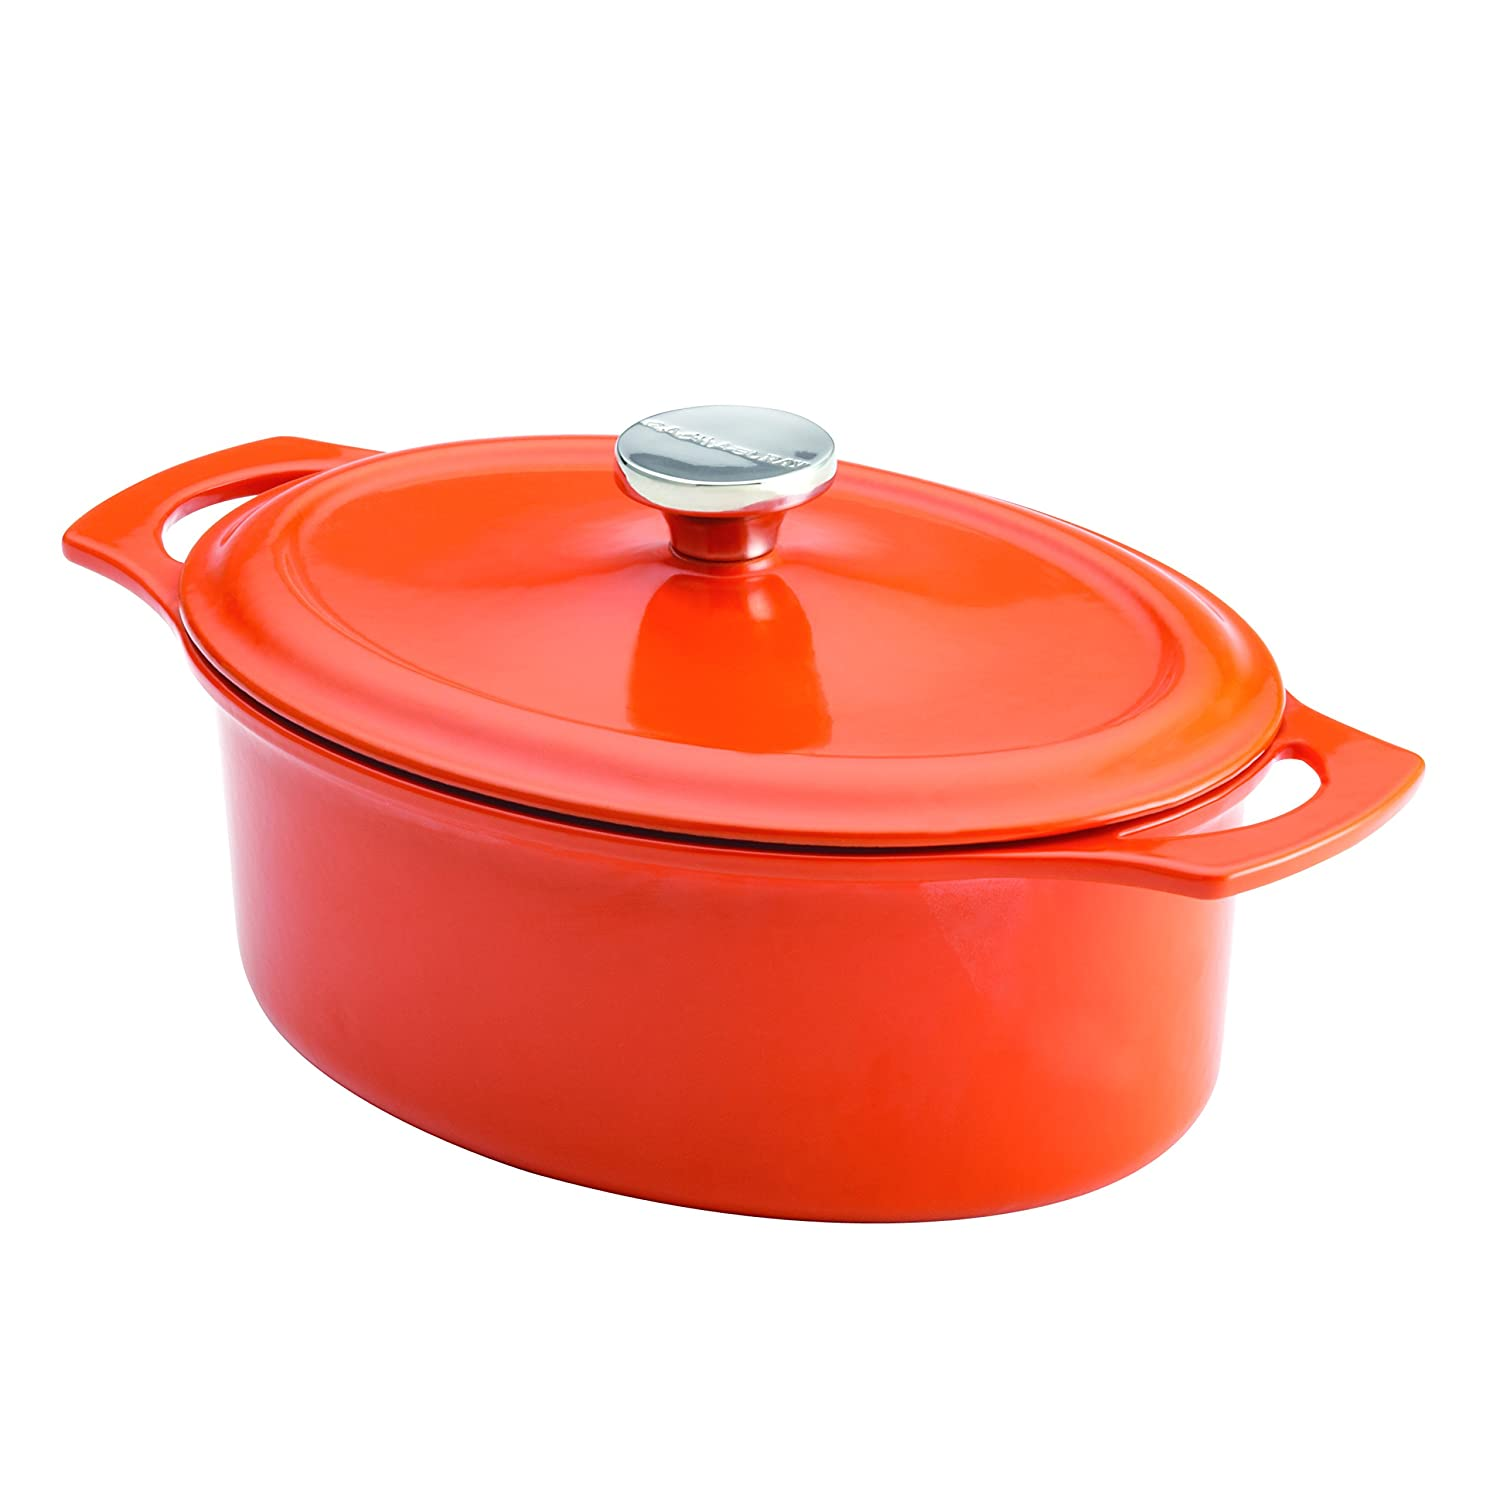 Rachael Ray 59162 Rachael Ray Cast Iron, 3.5-Quart Covered Oval Casserole, Orange B00992A2N0